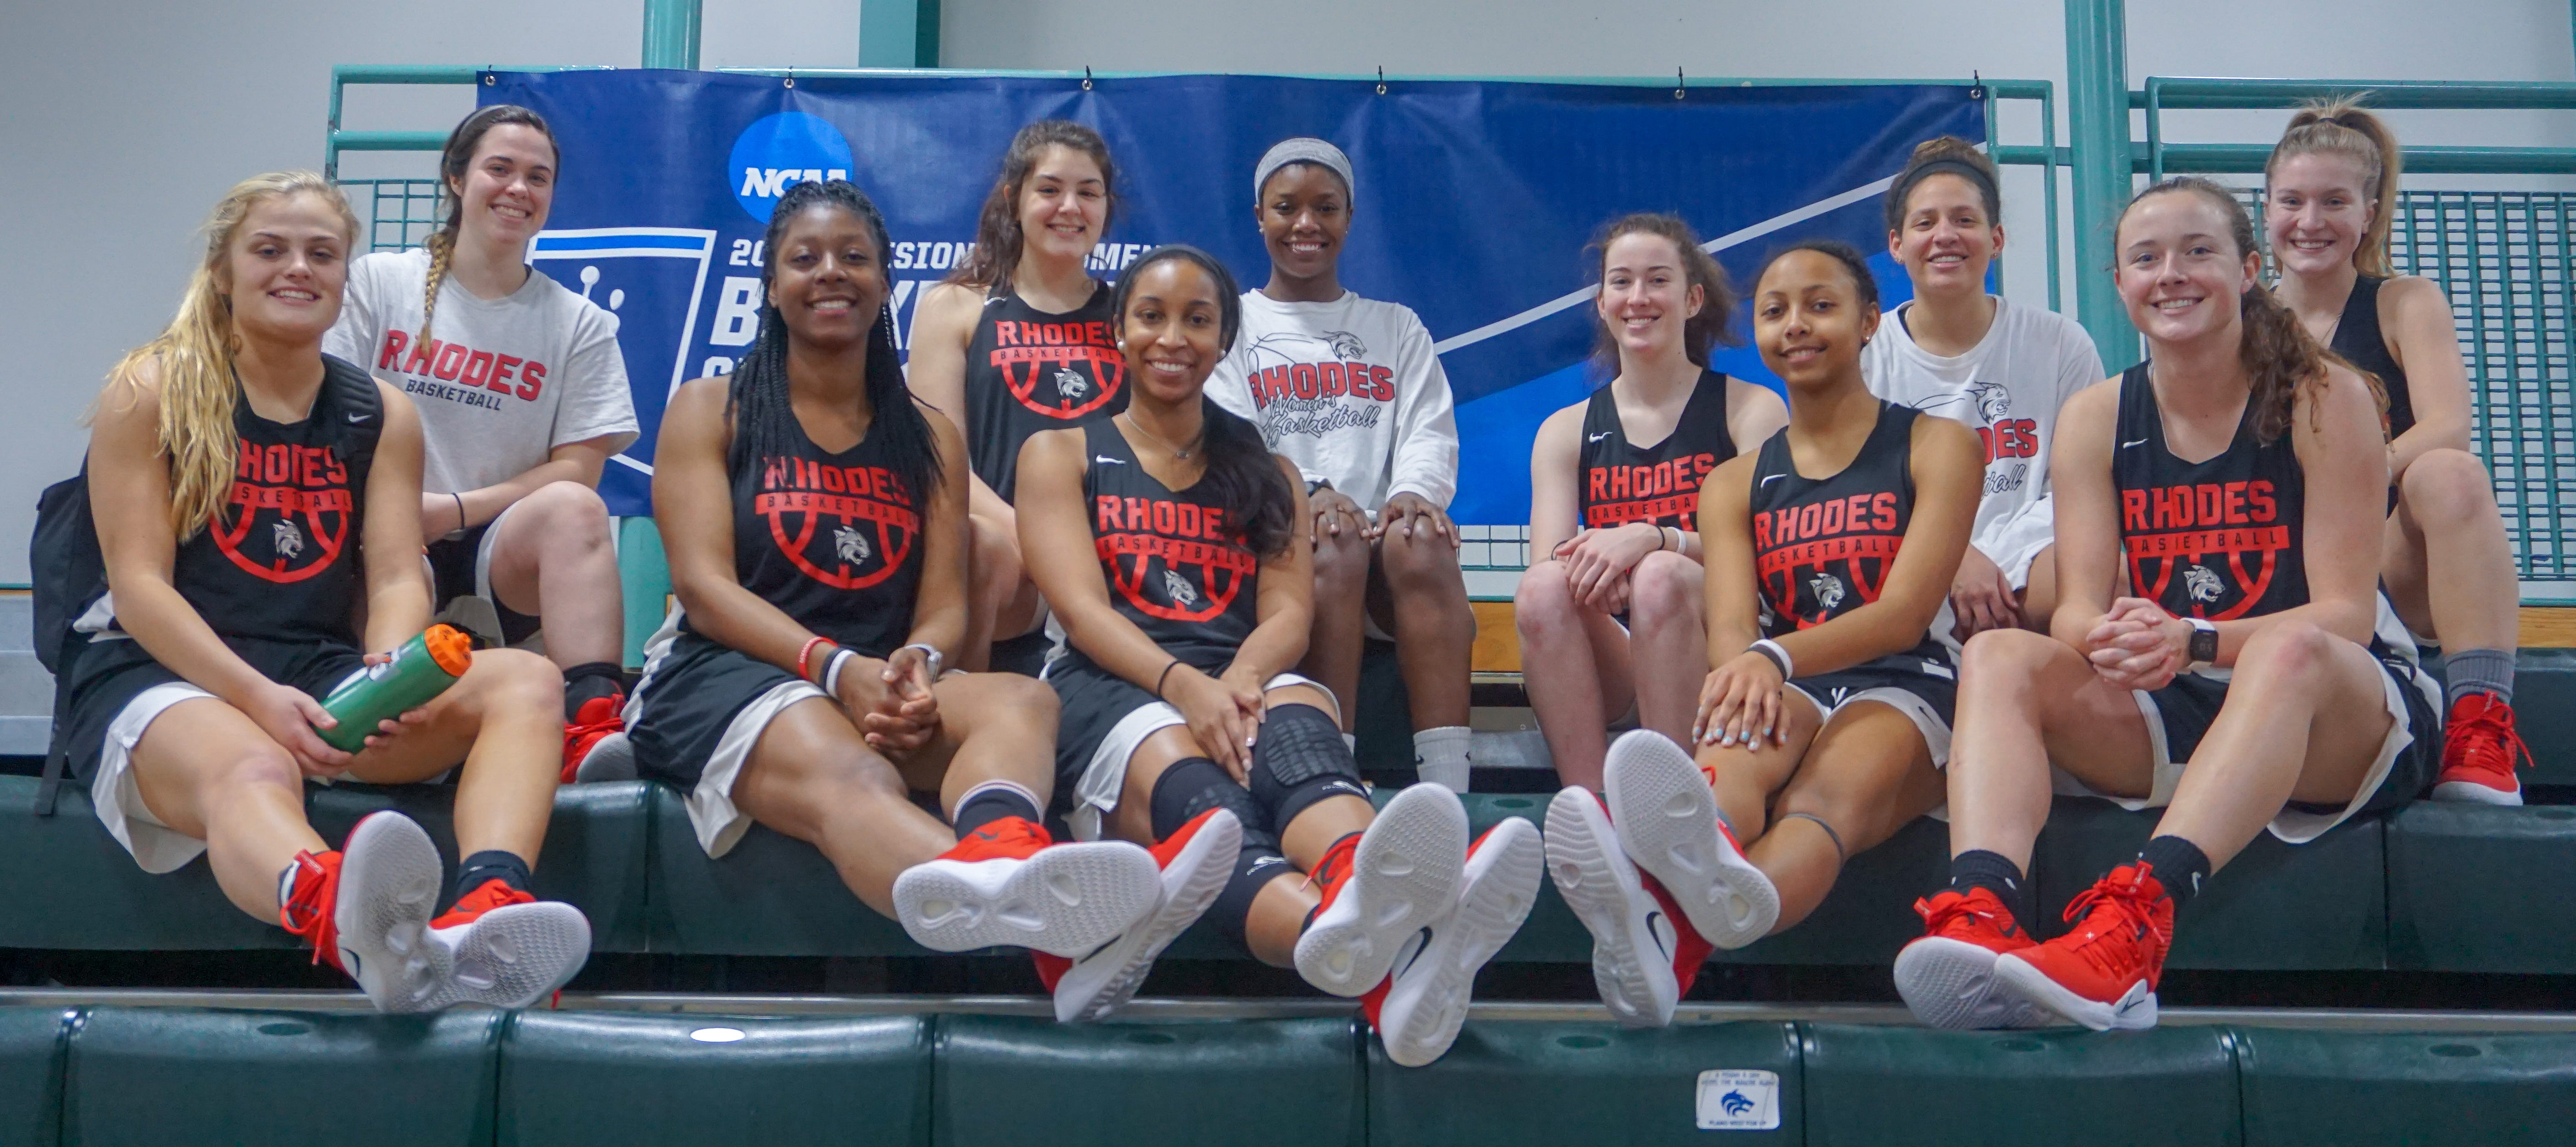 The Rhodes College women's basketball team won the SAA Tournament to advance to the NCAA Division 3 Championship.